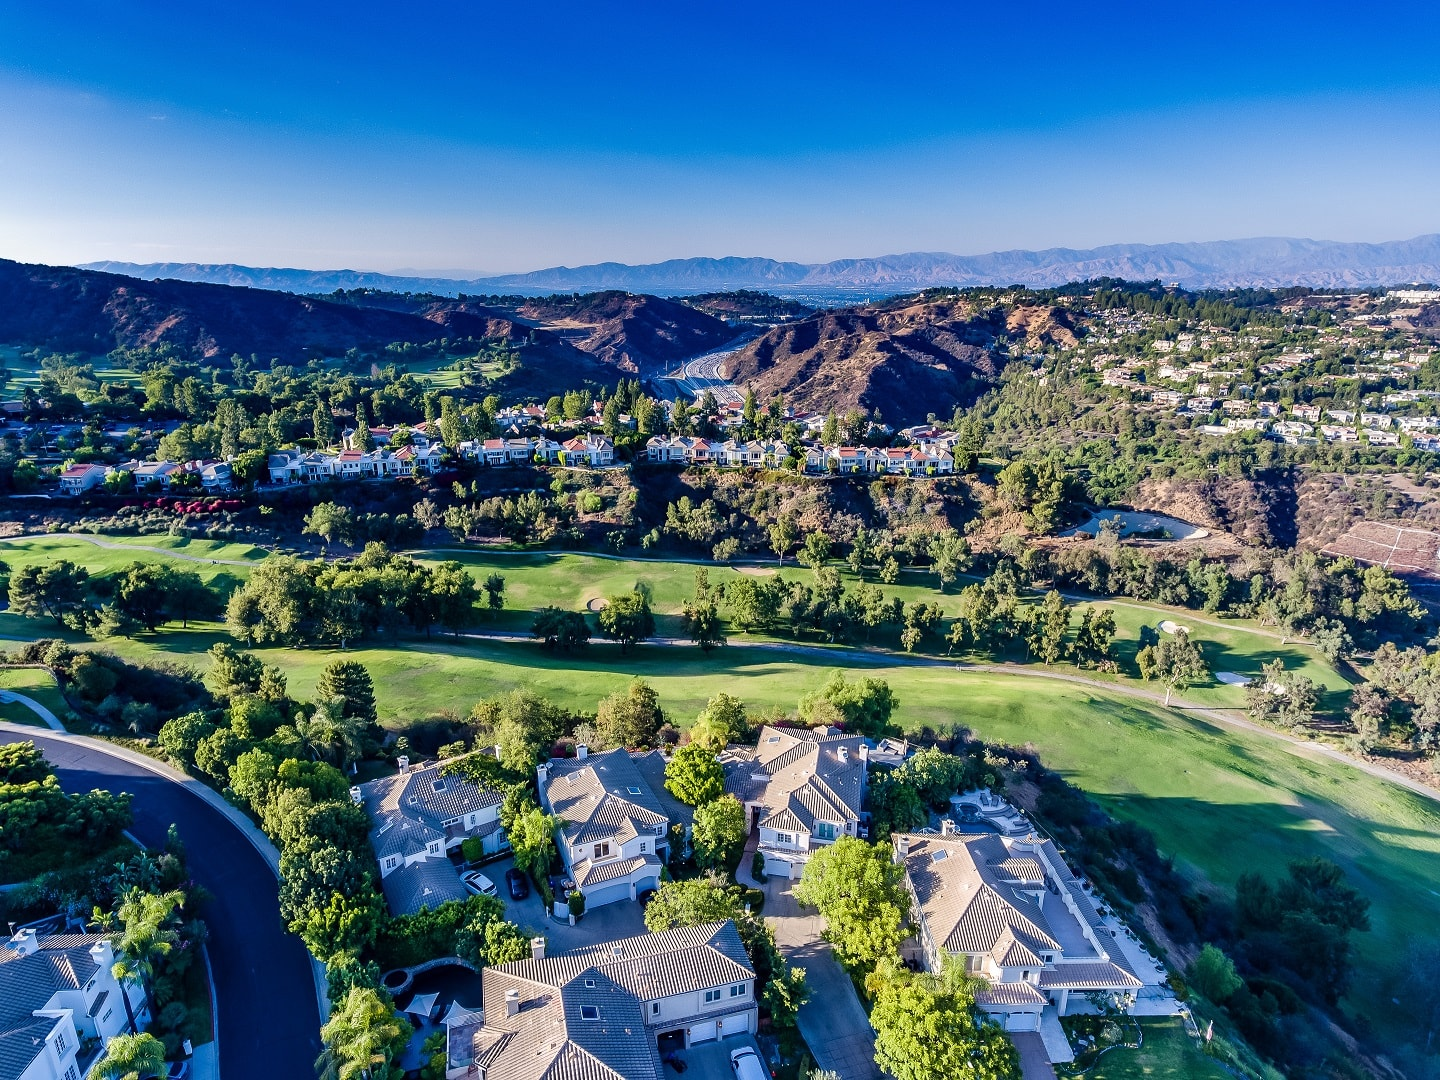 Mountaingate Gated Community in Brentwood, Los Angeles